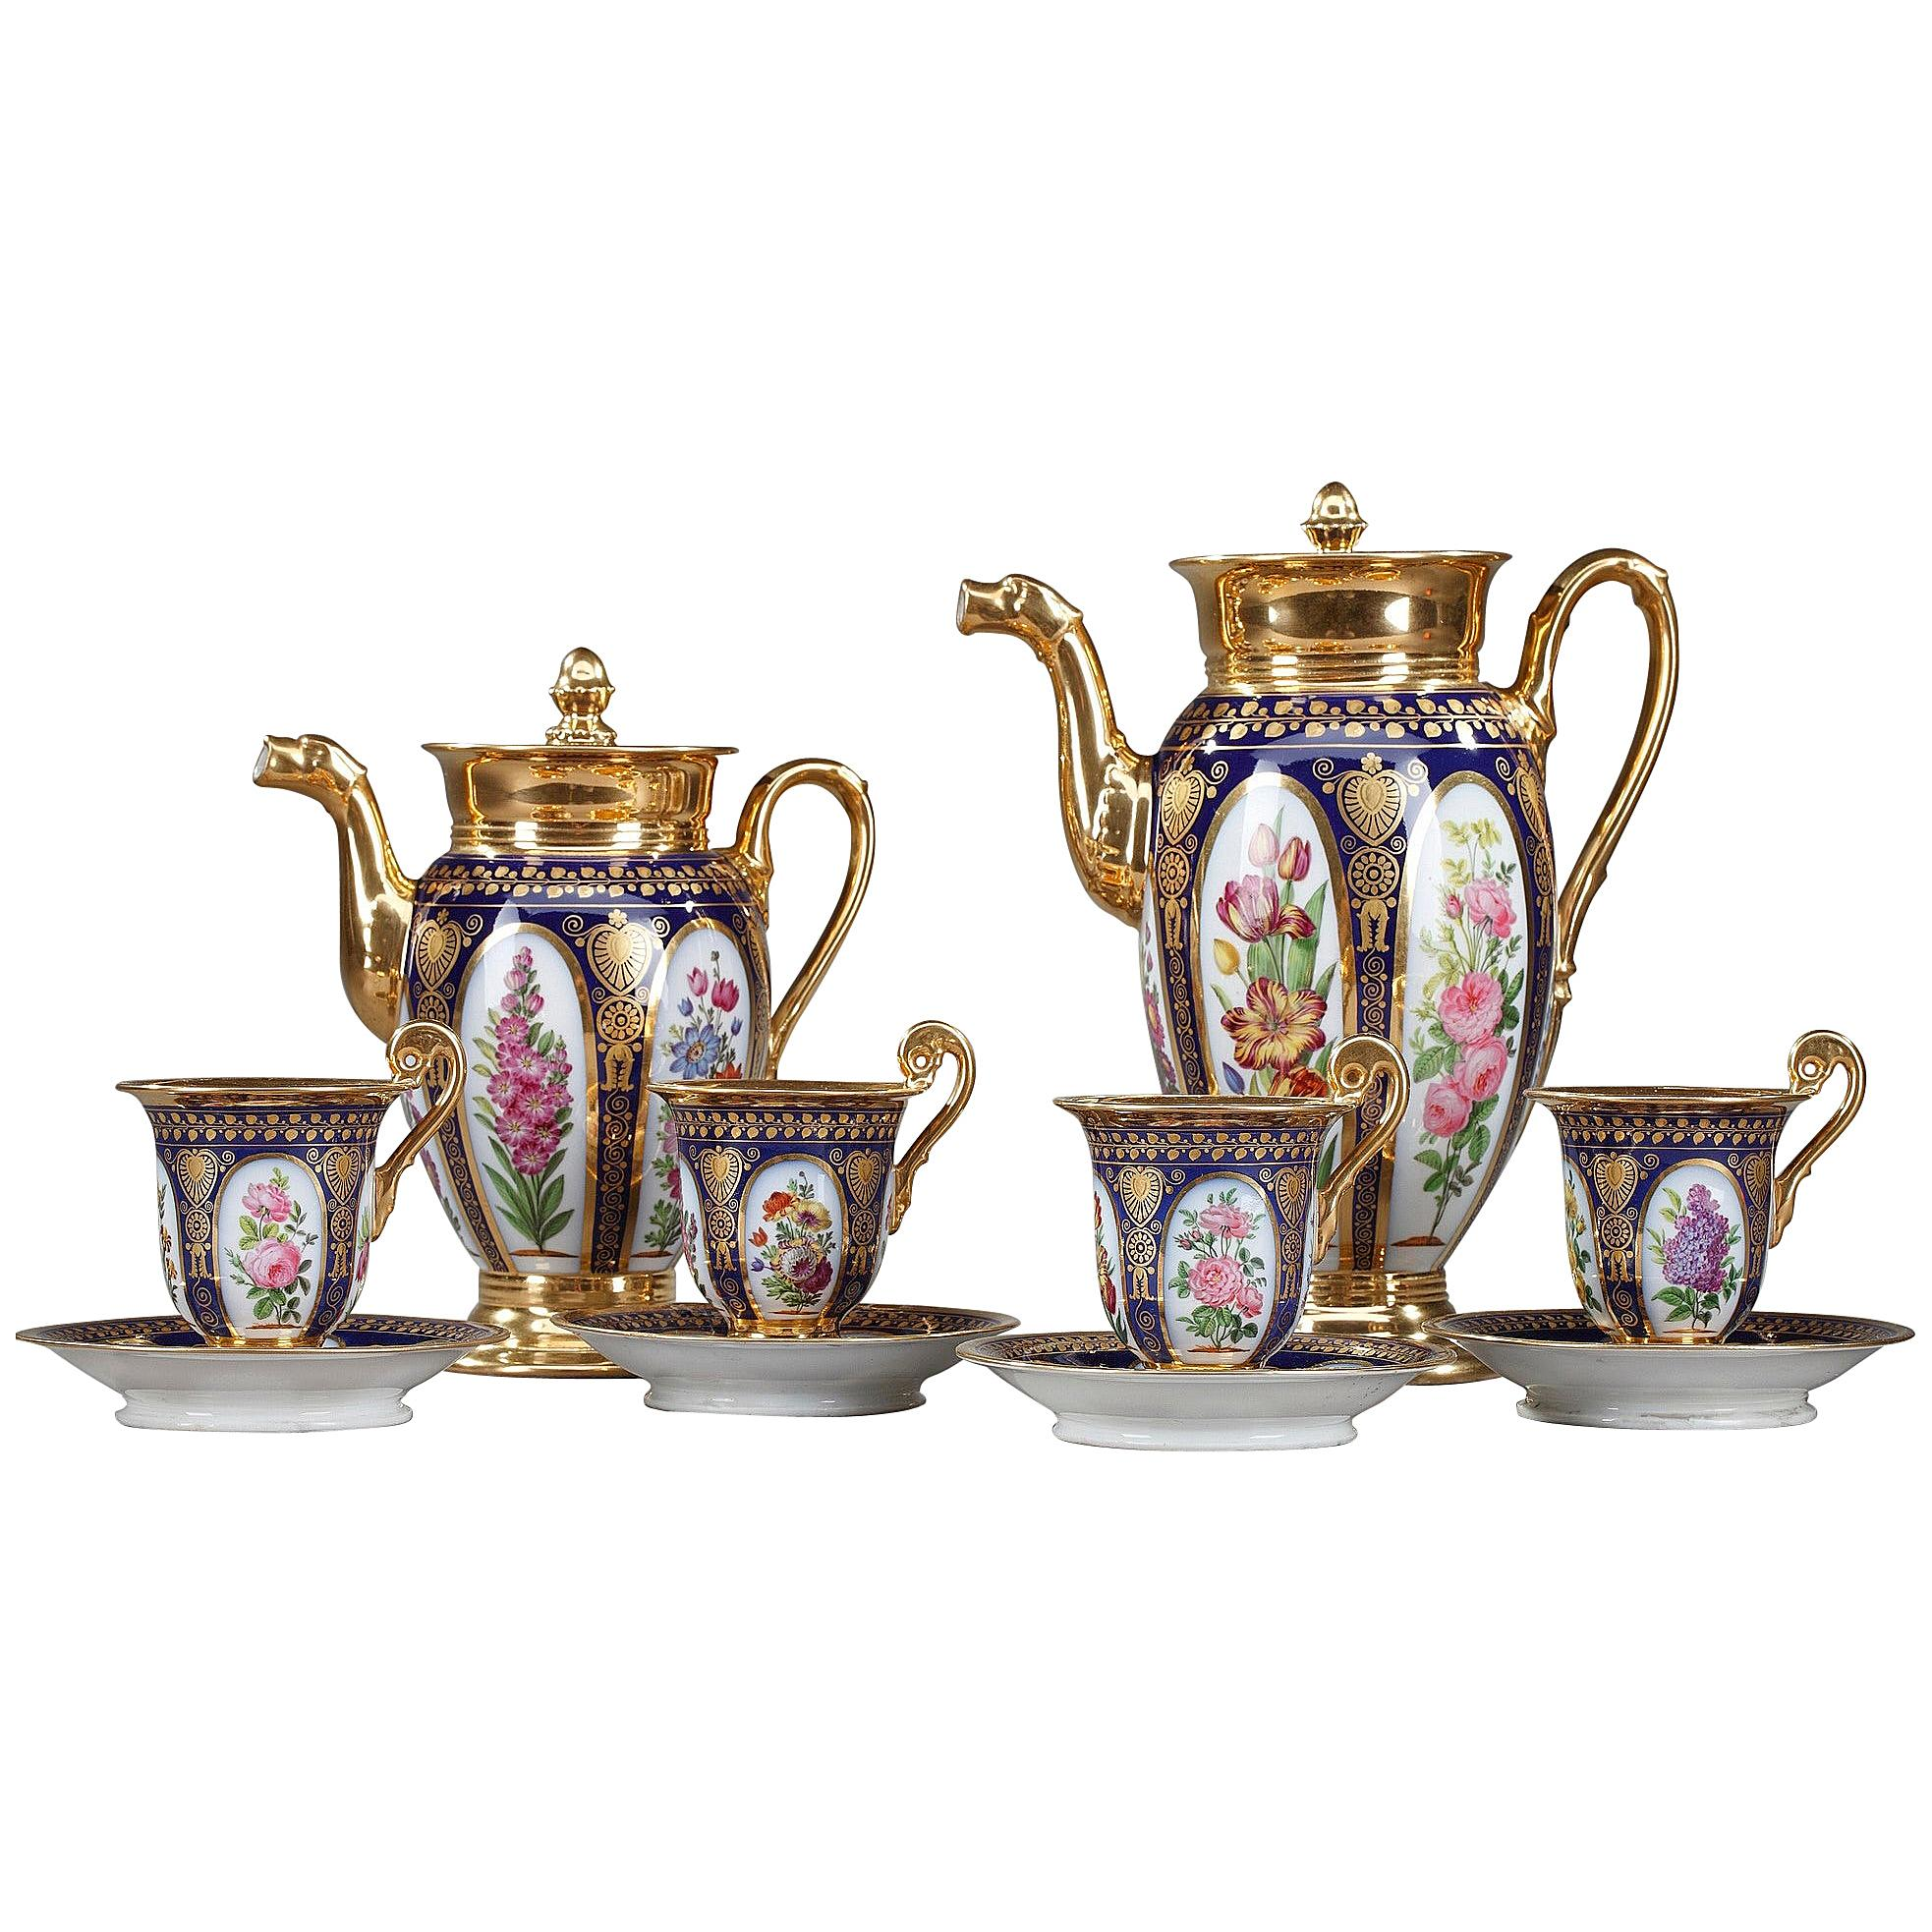 Paris Porcelain Coffee Service in Charles X-Style